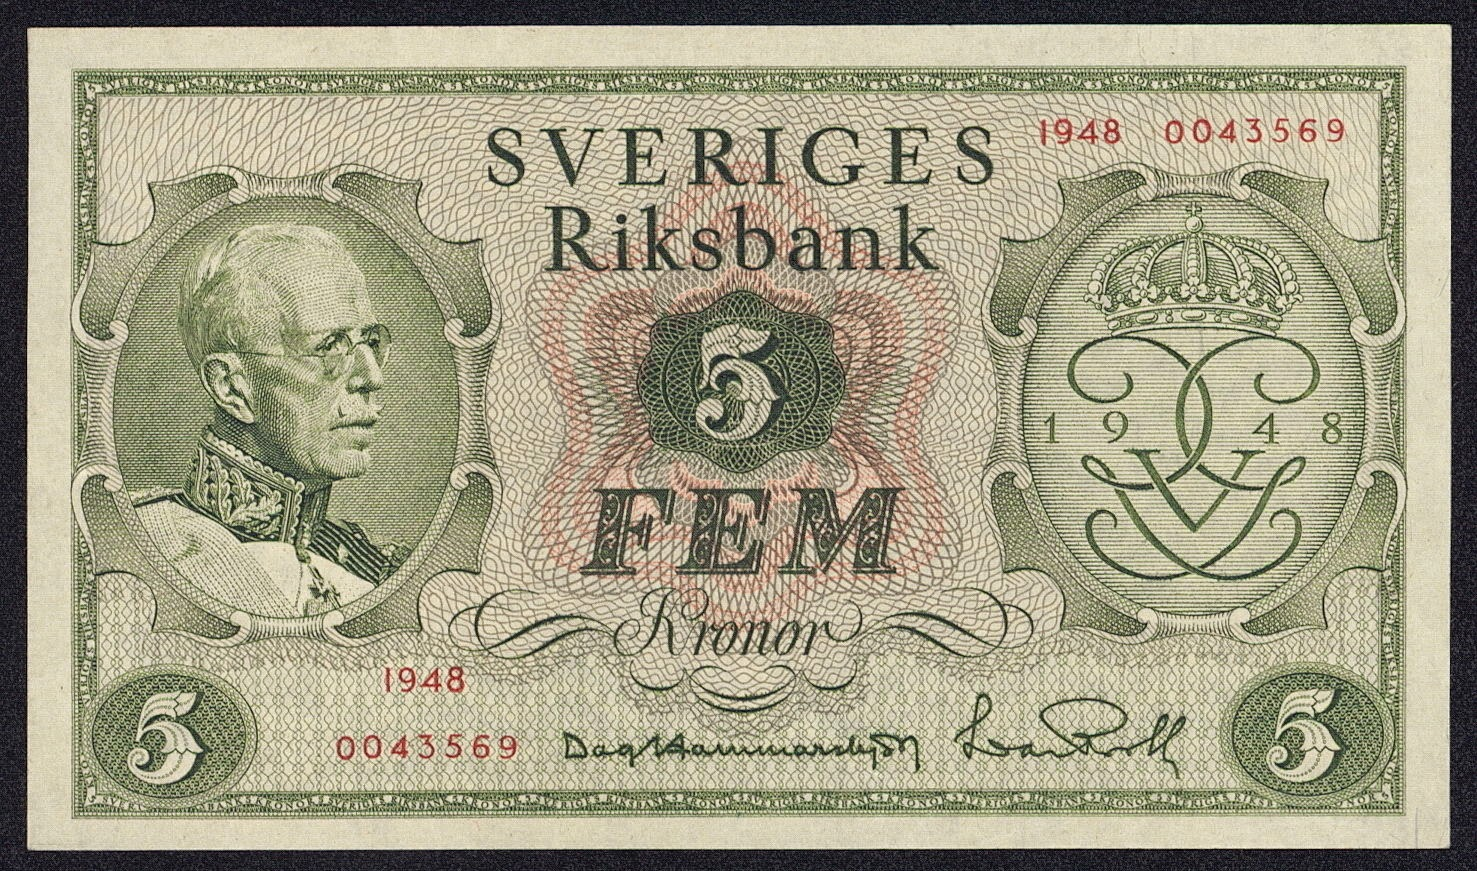 Sverige money